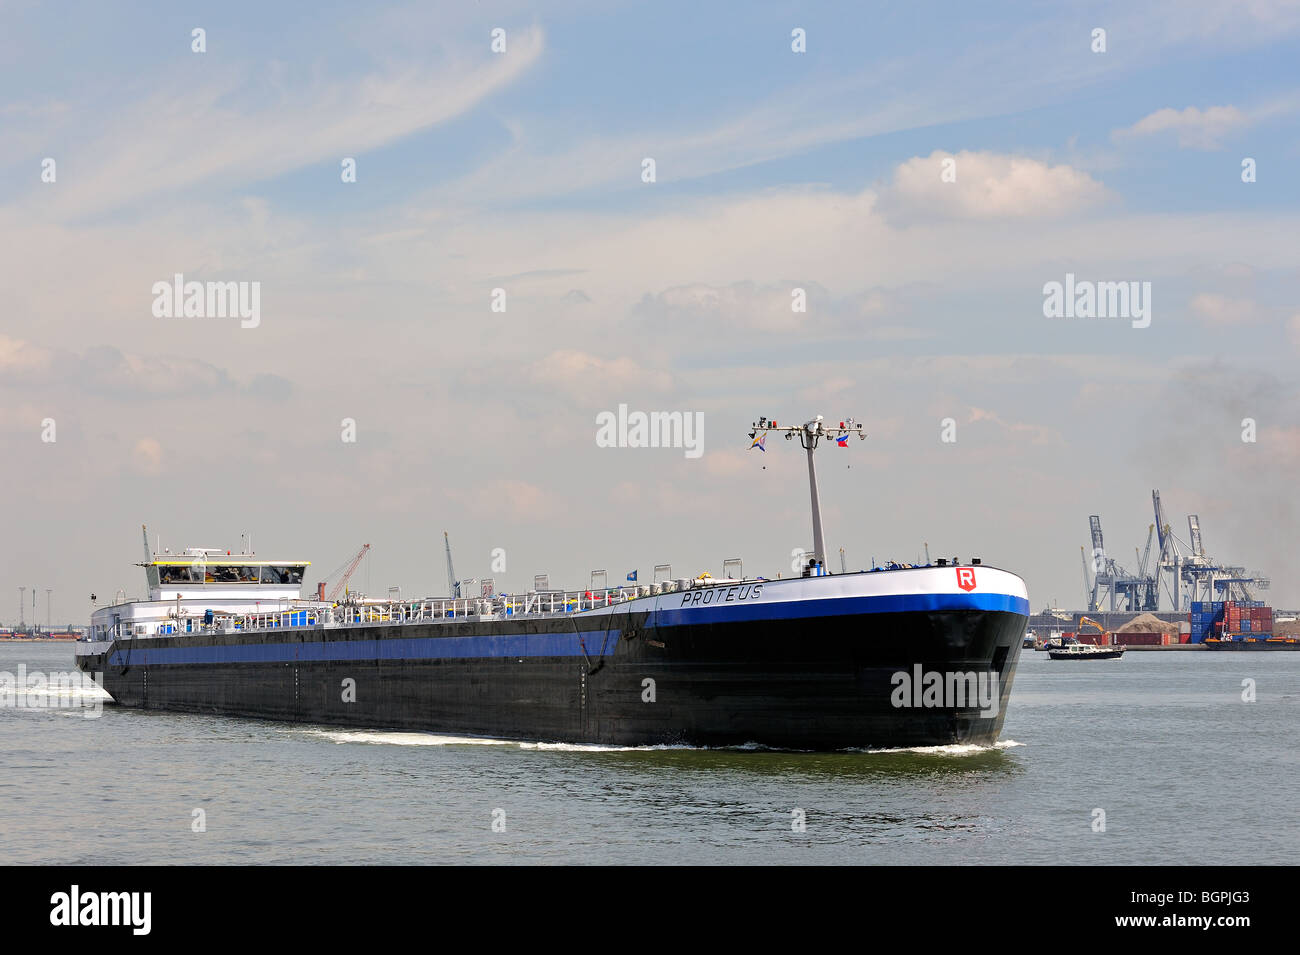 Inland vessel sailing into dock of the Antwerp harbour, Belgium - Stock Image